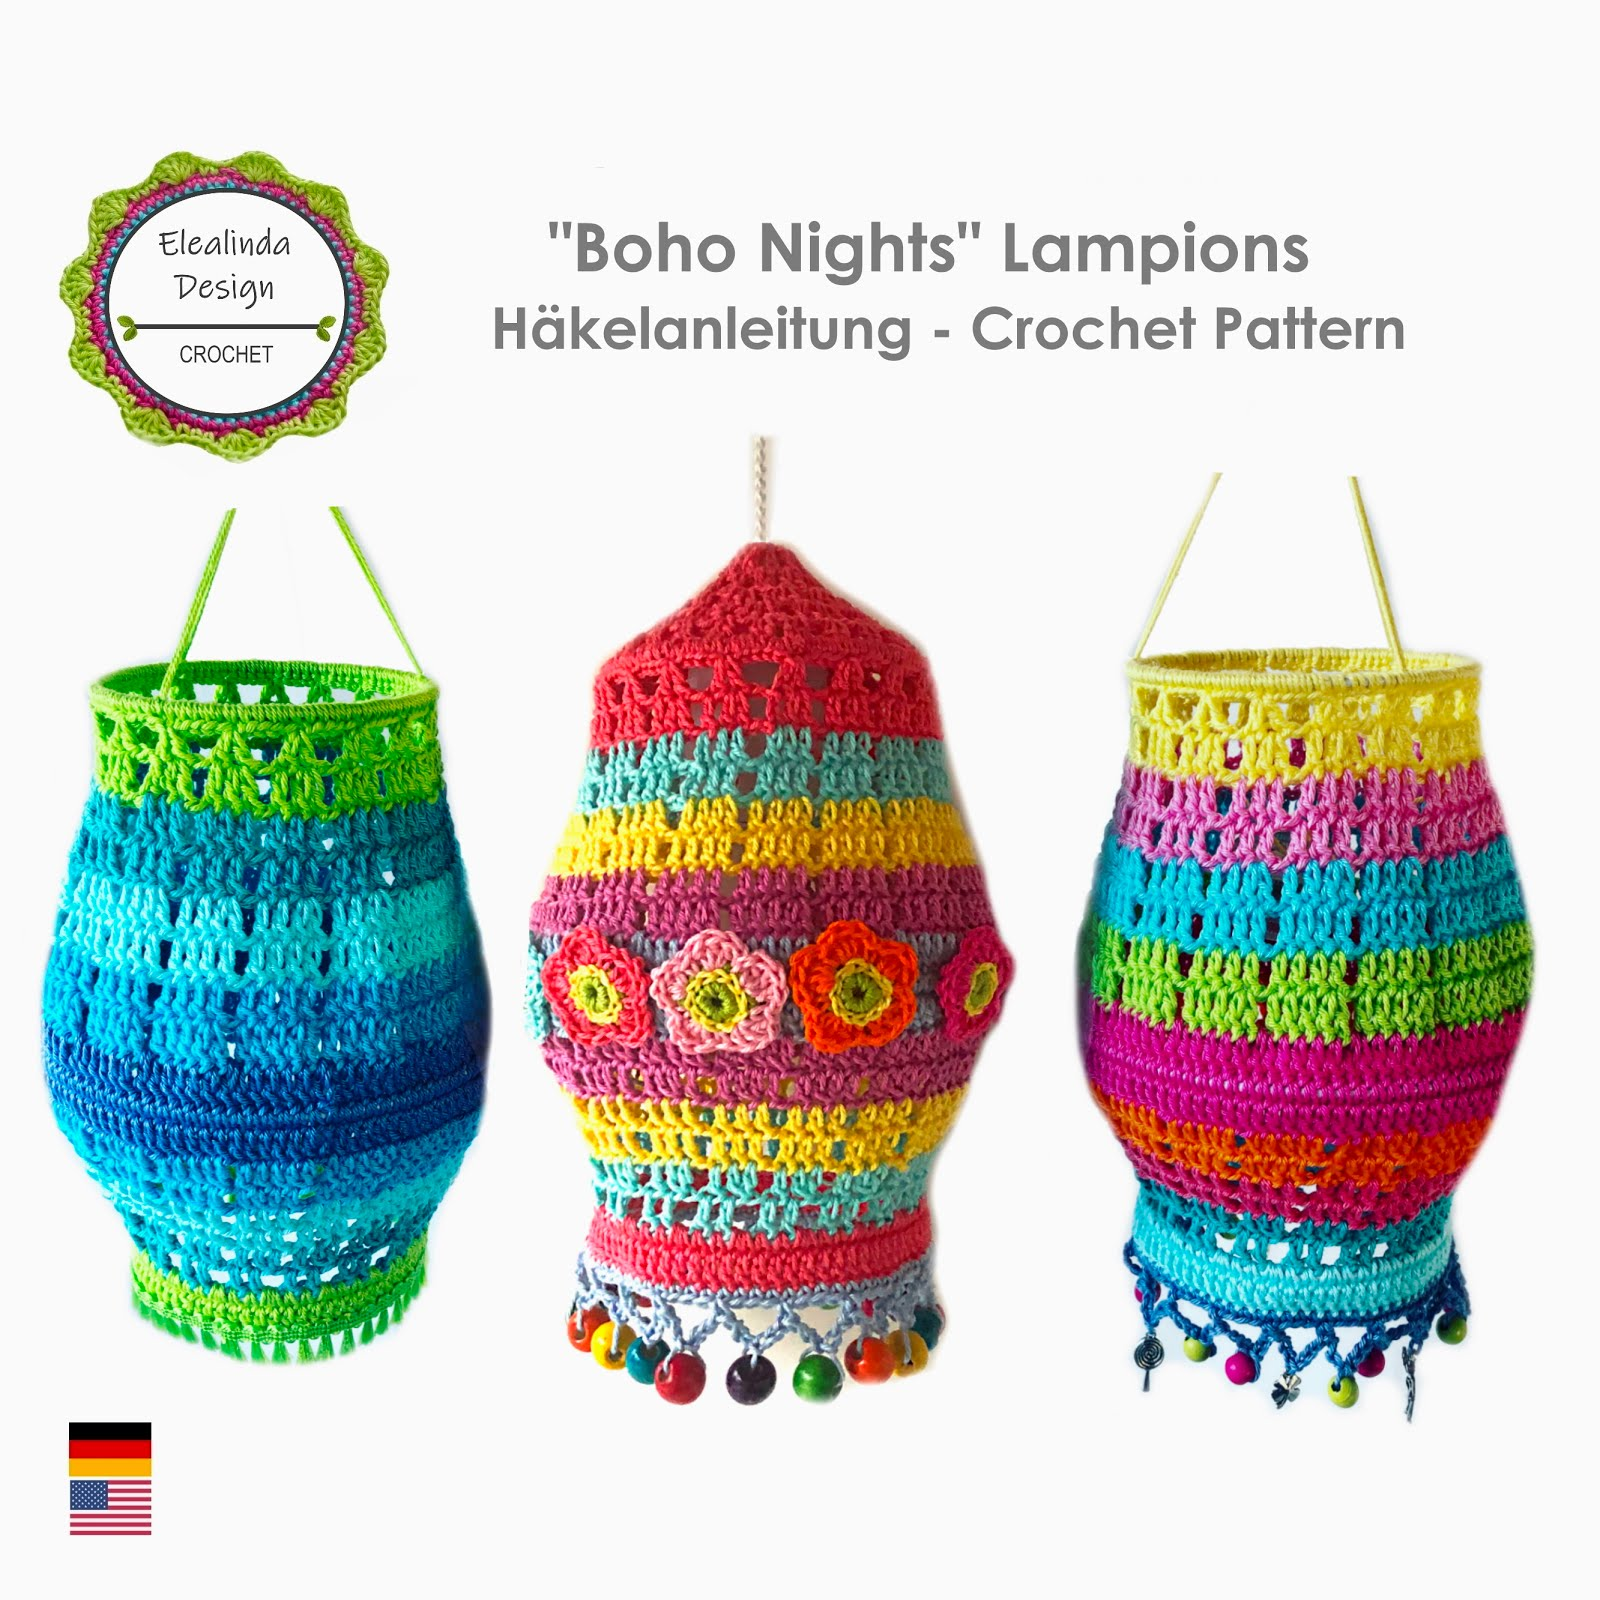 Boho Nights Laternen Häkelanleitung